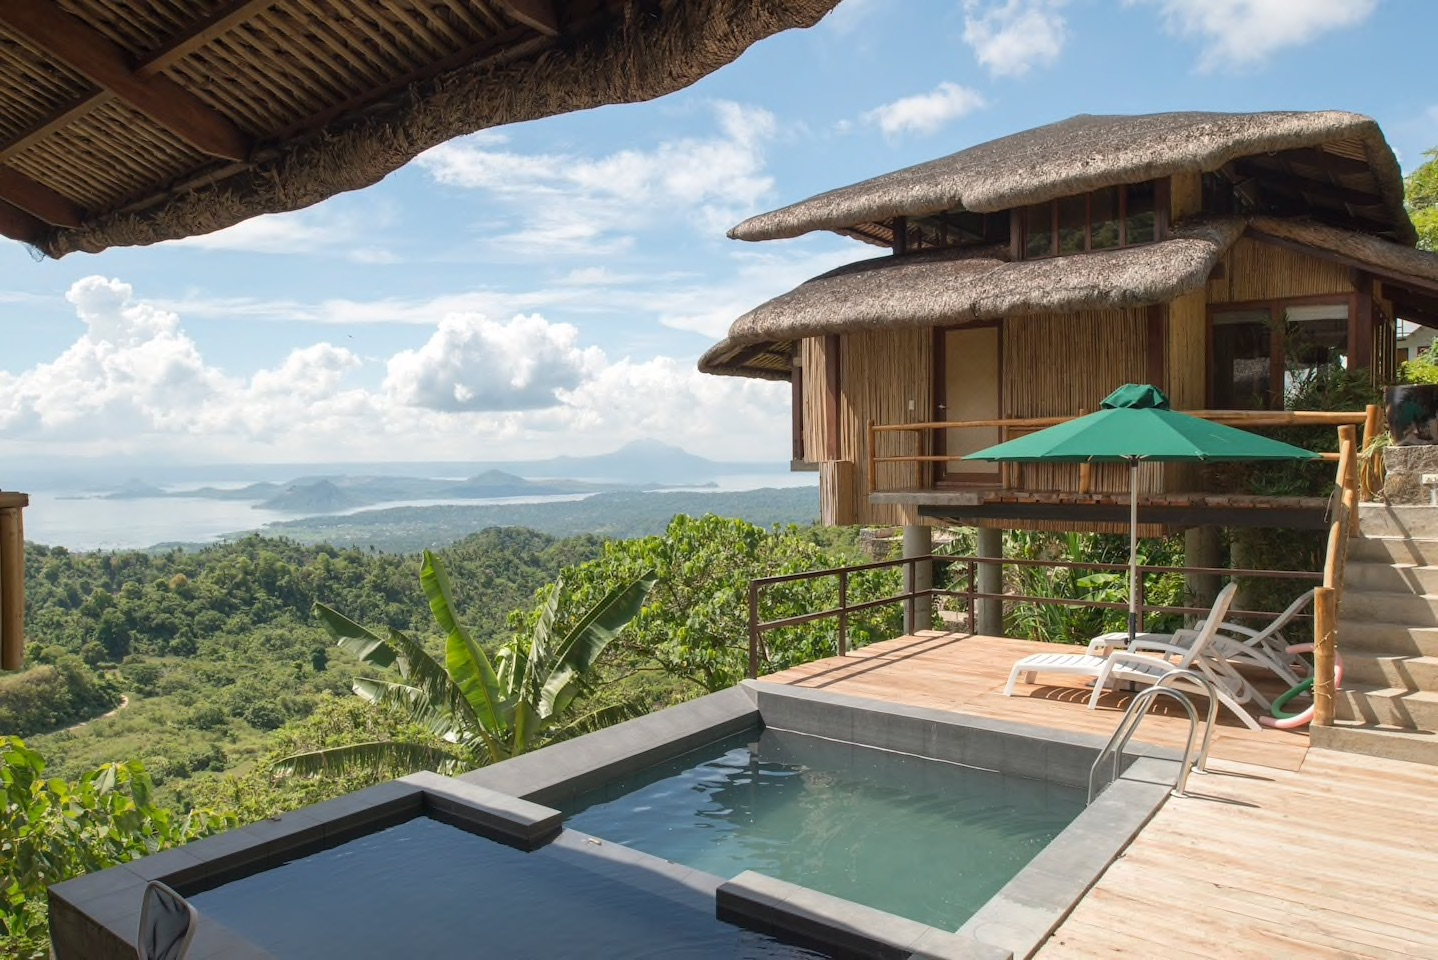 10 Airbnbs in the Philippines That Will Make You Fall in Love